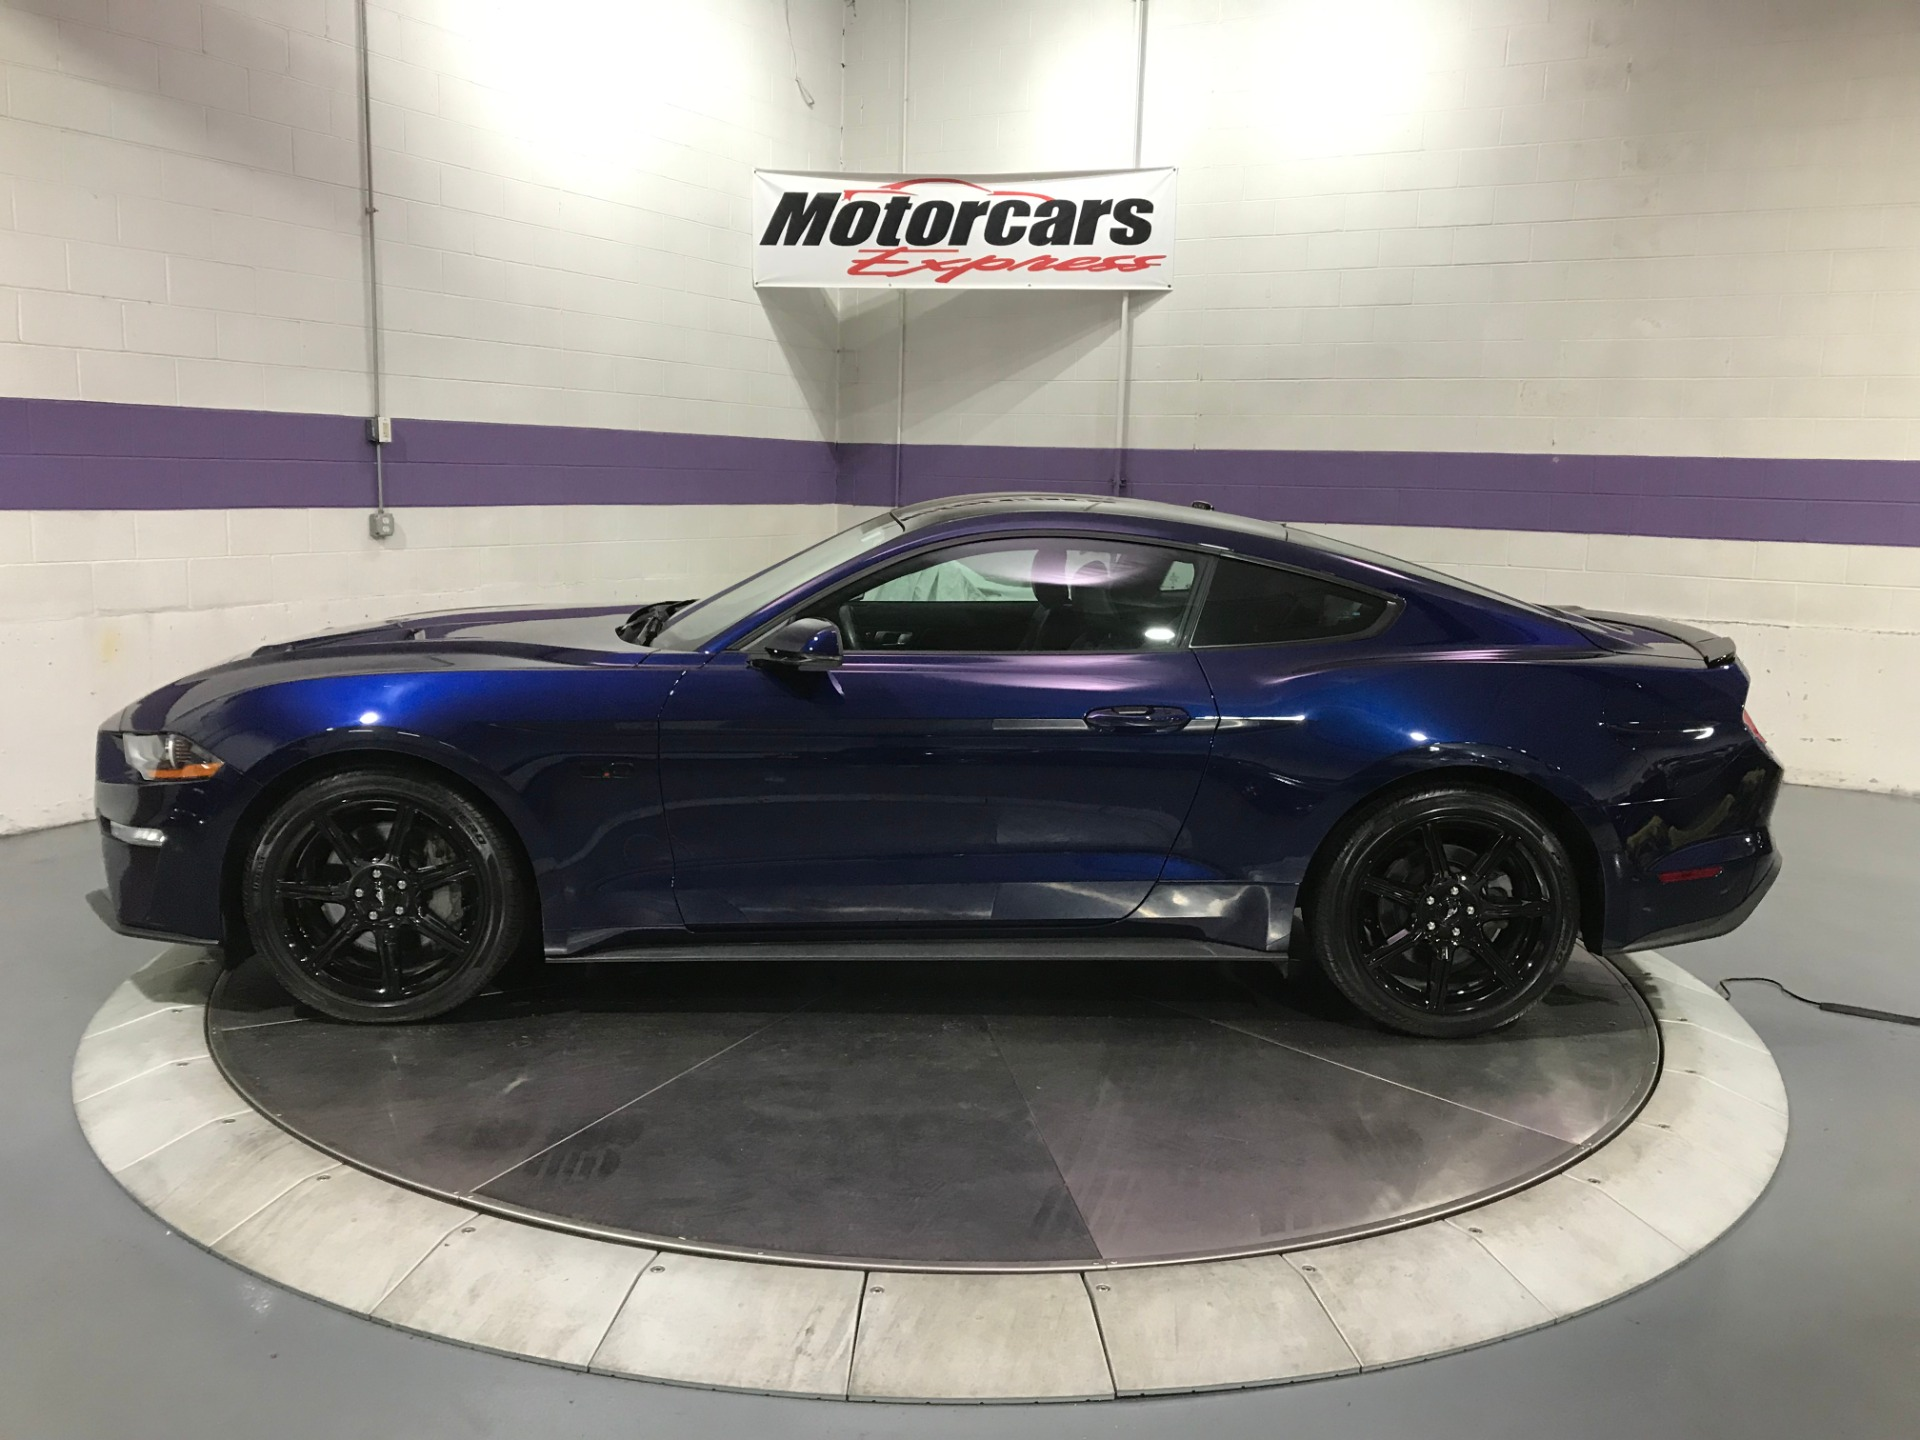 2018 Mustang Gt For Sale >> 2018 Ford Mustang Gt Premium Stock 25070 For Sale Near